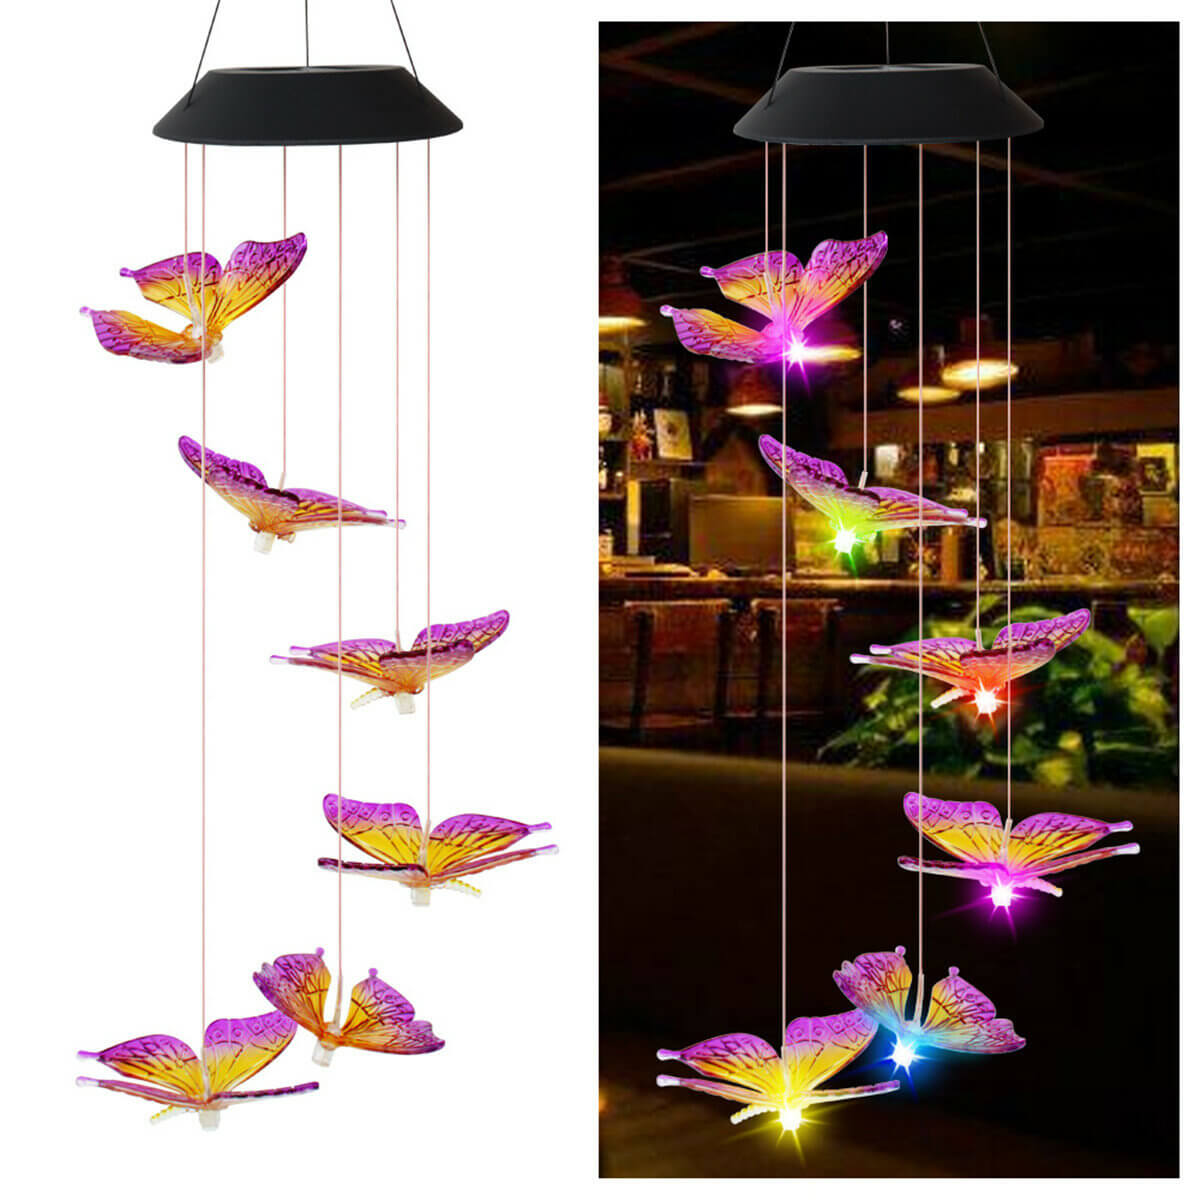 Bargainova™ Color Changing Hummingbird Wind Chime with Solar LED